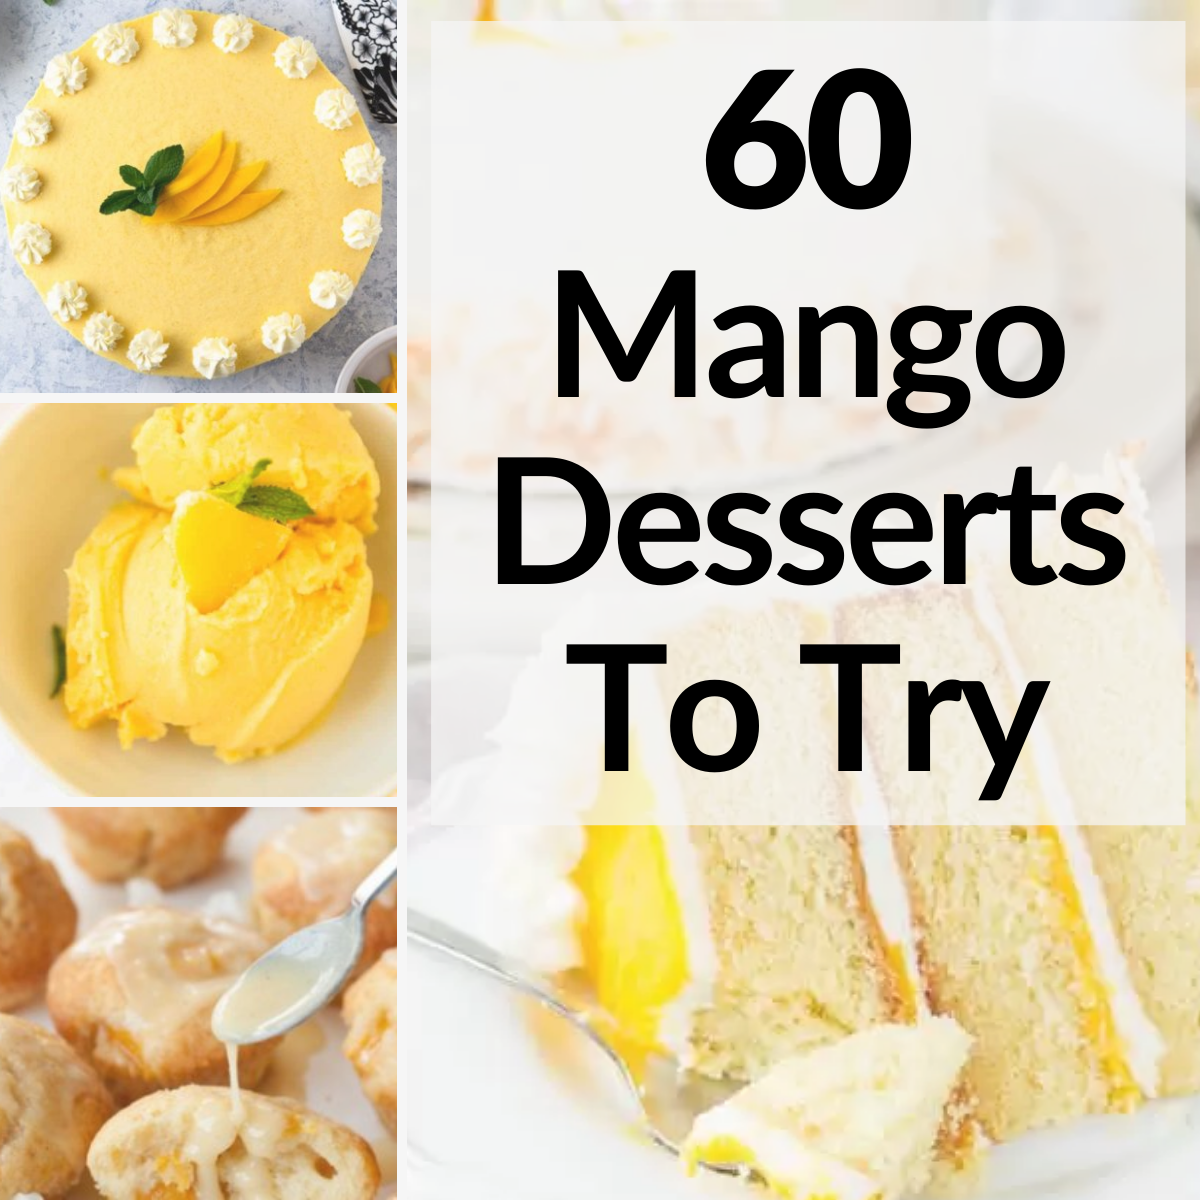 Graphic of 60 mango desserts to try.